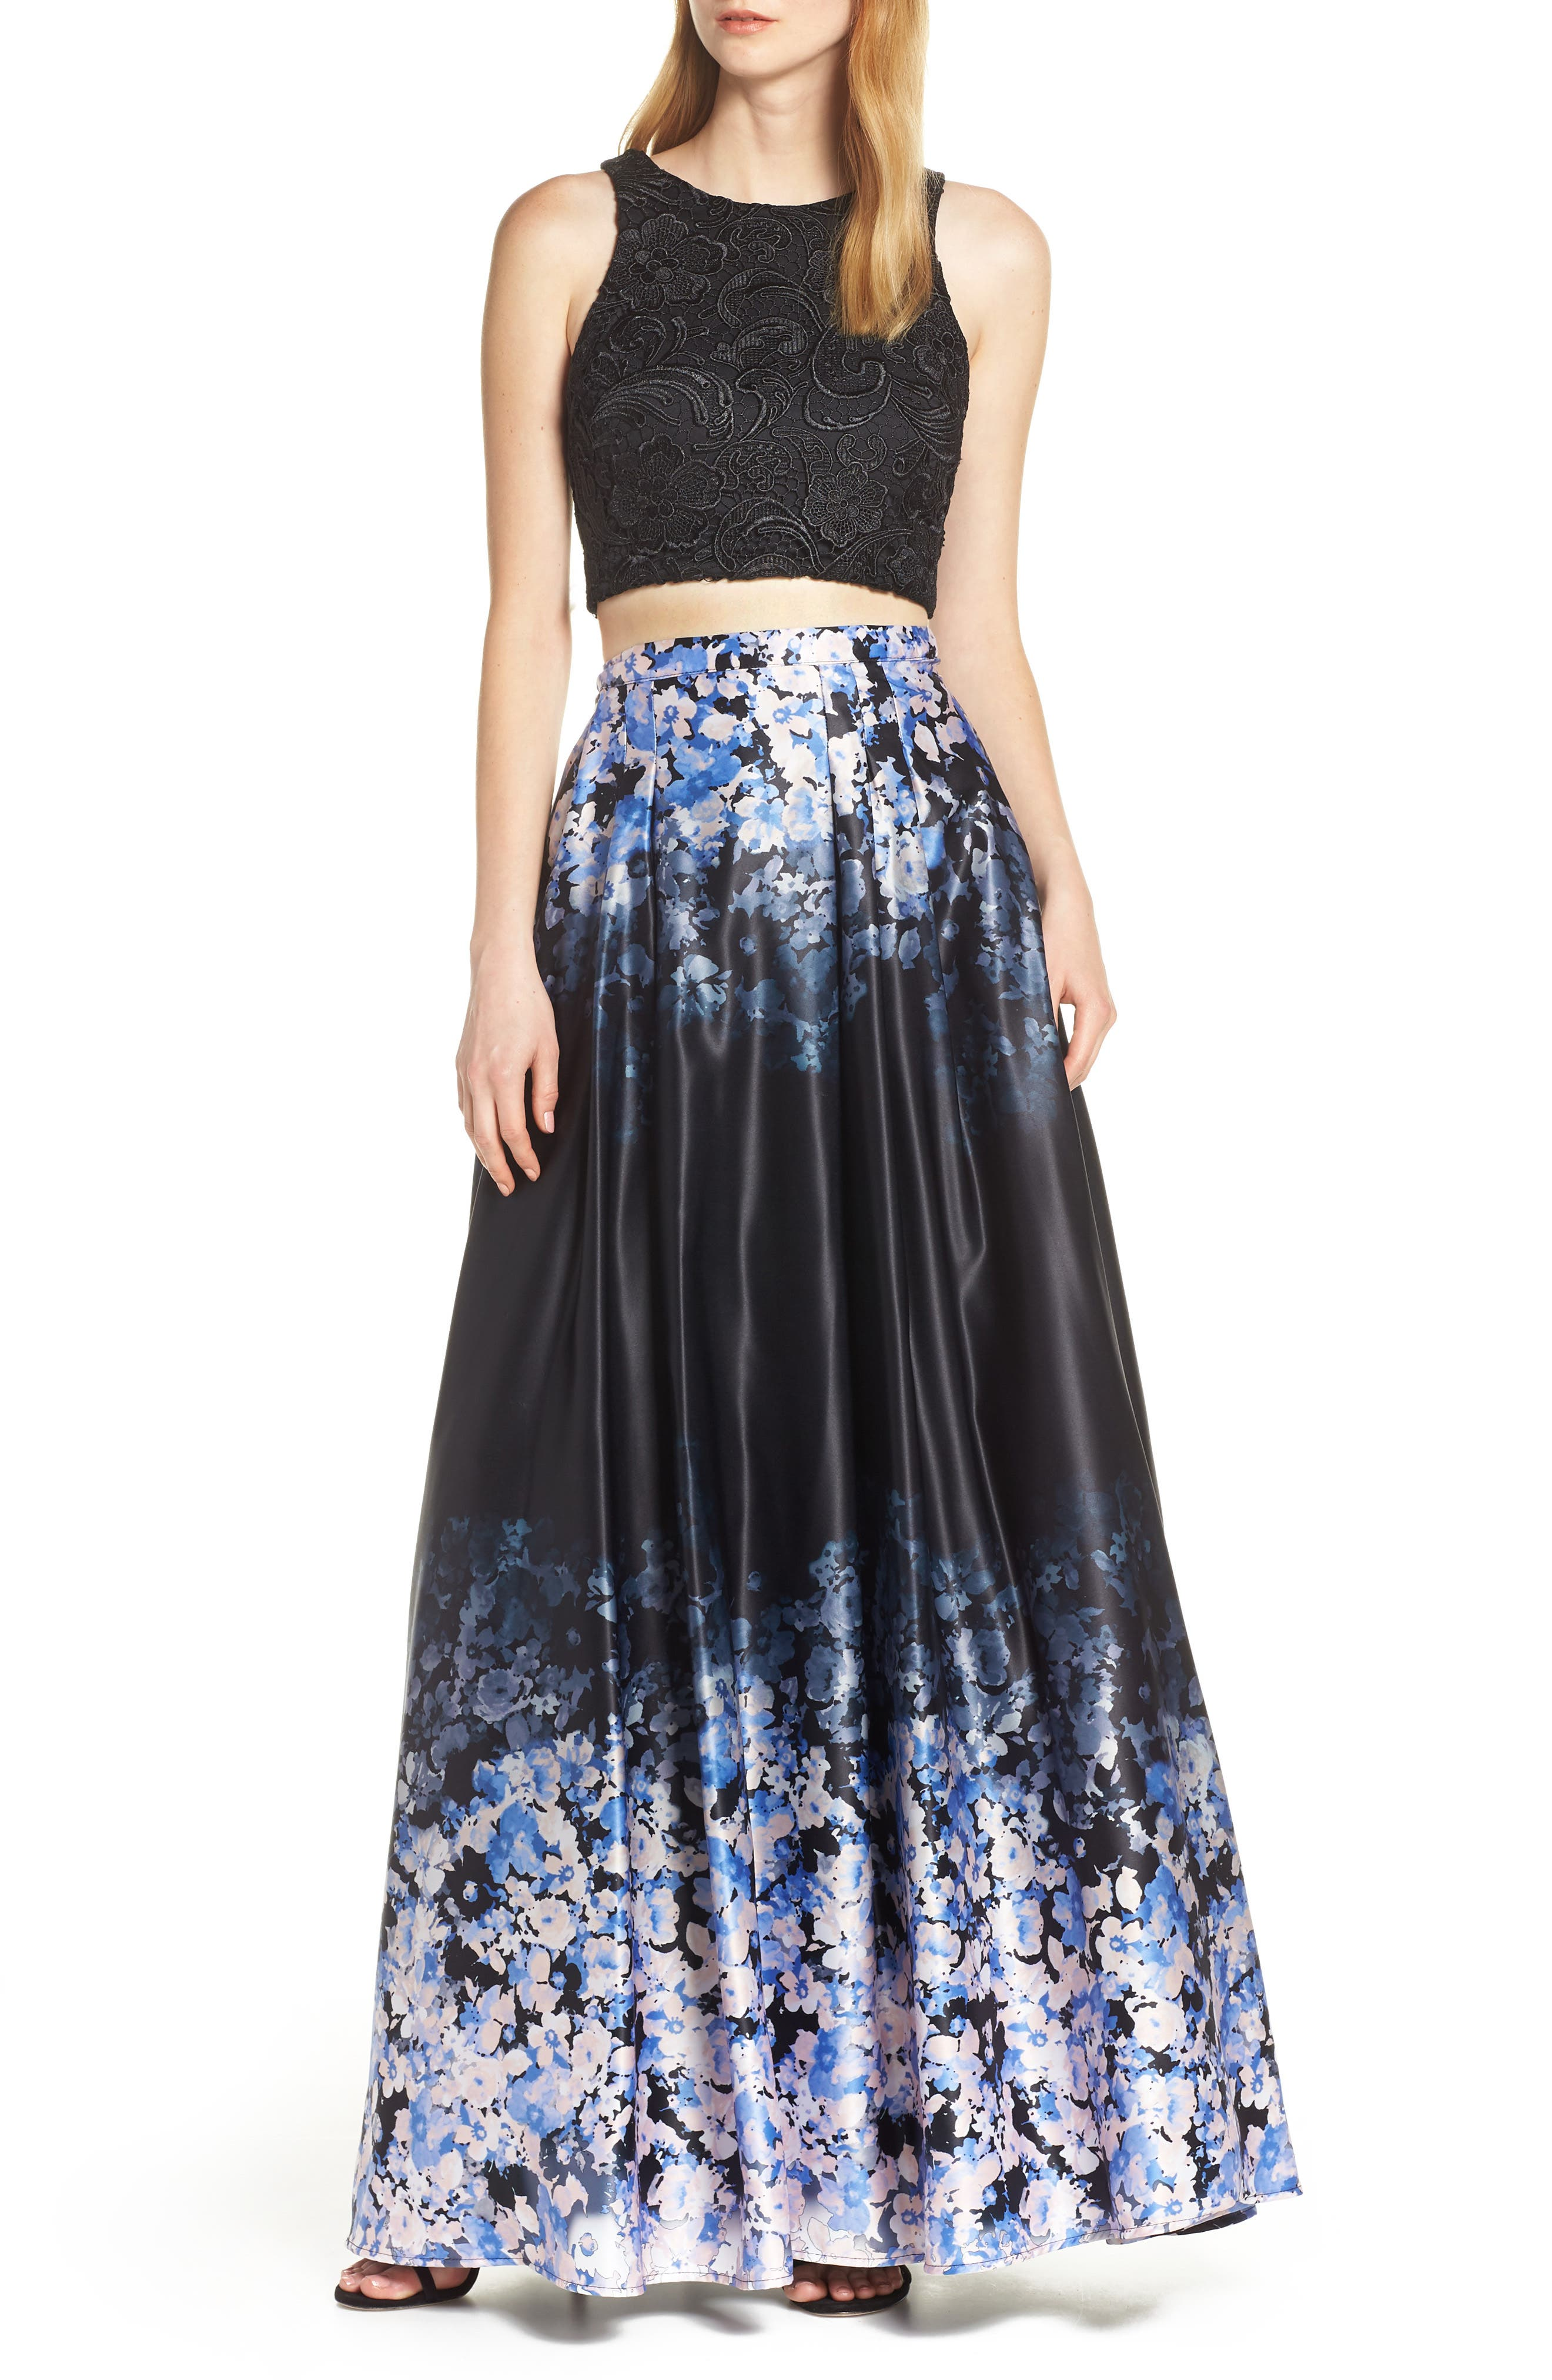 Sequin Hearts Satin & Lace Two-Piece Evening Dress, Black